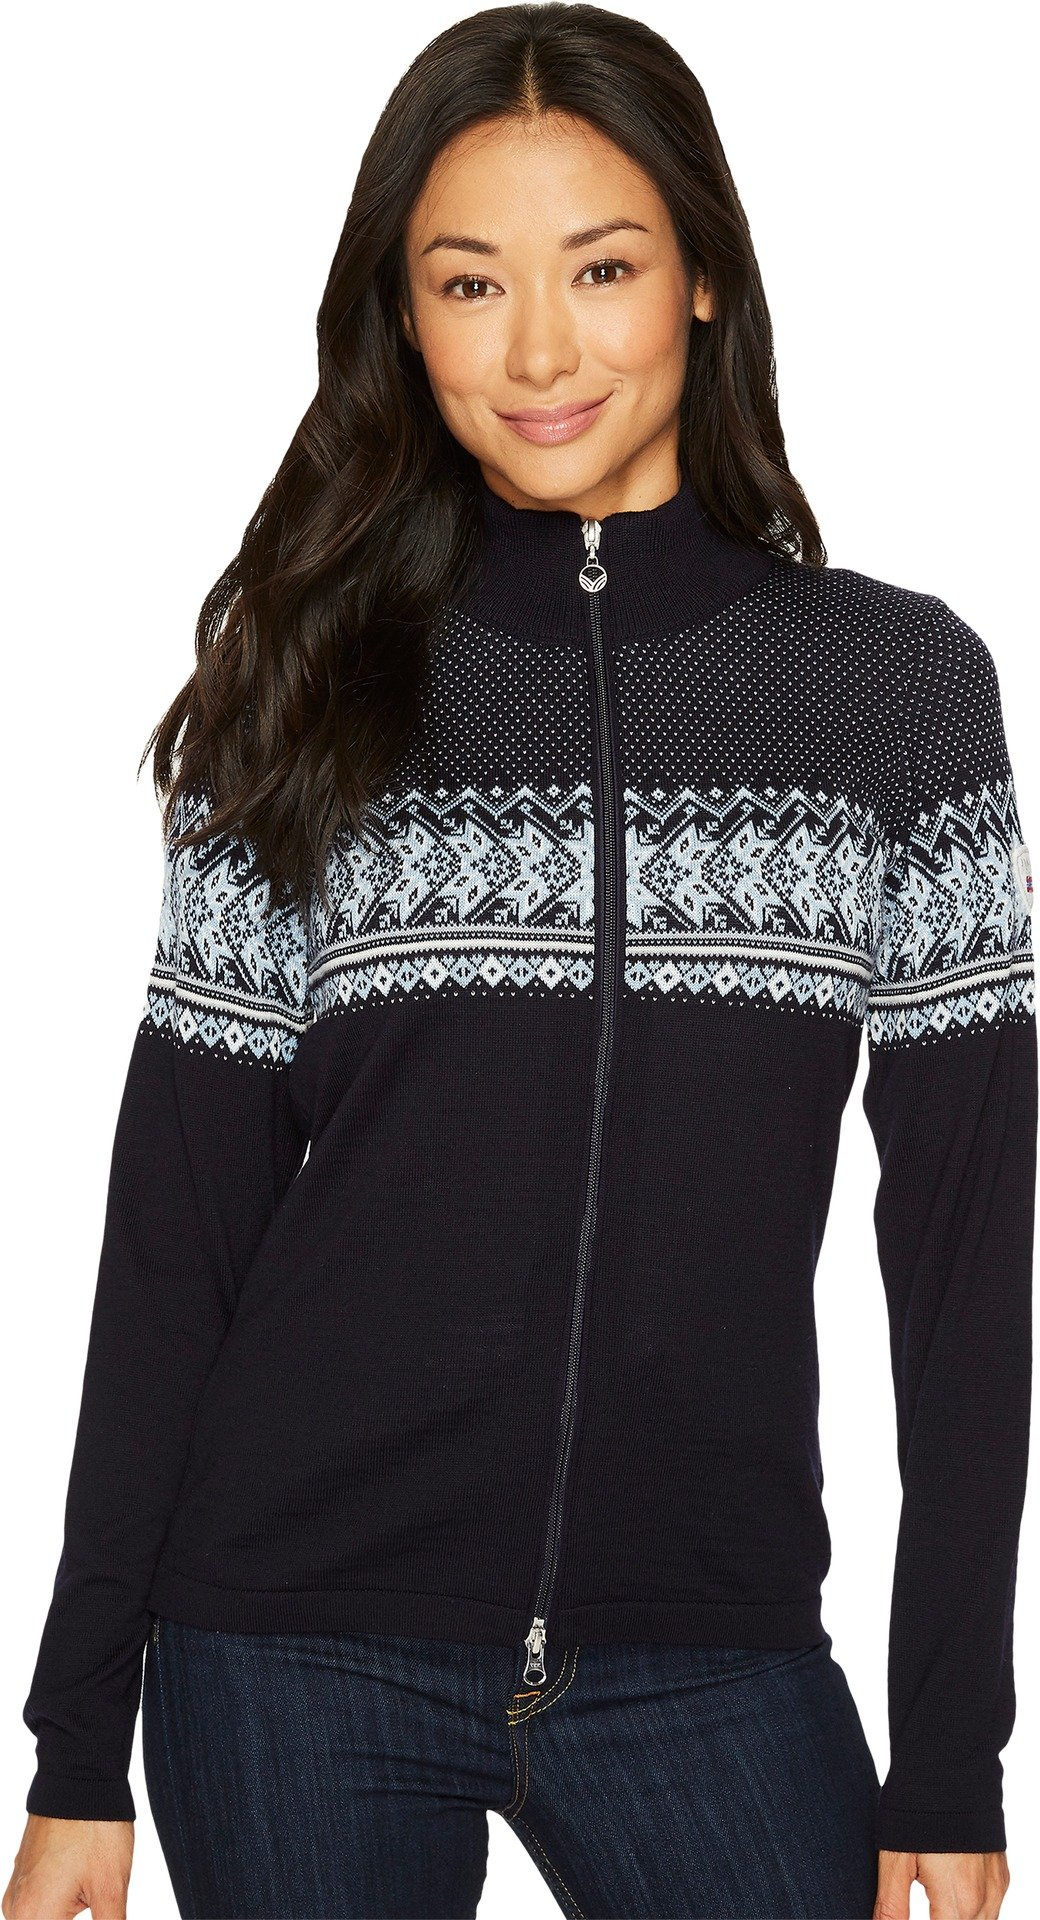 Dale of Norway Women's Hovden Jacket C-Navy/Off-White/Ice Blue/Grey Small